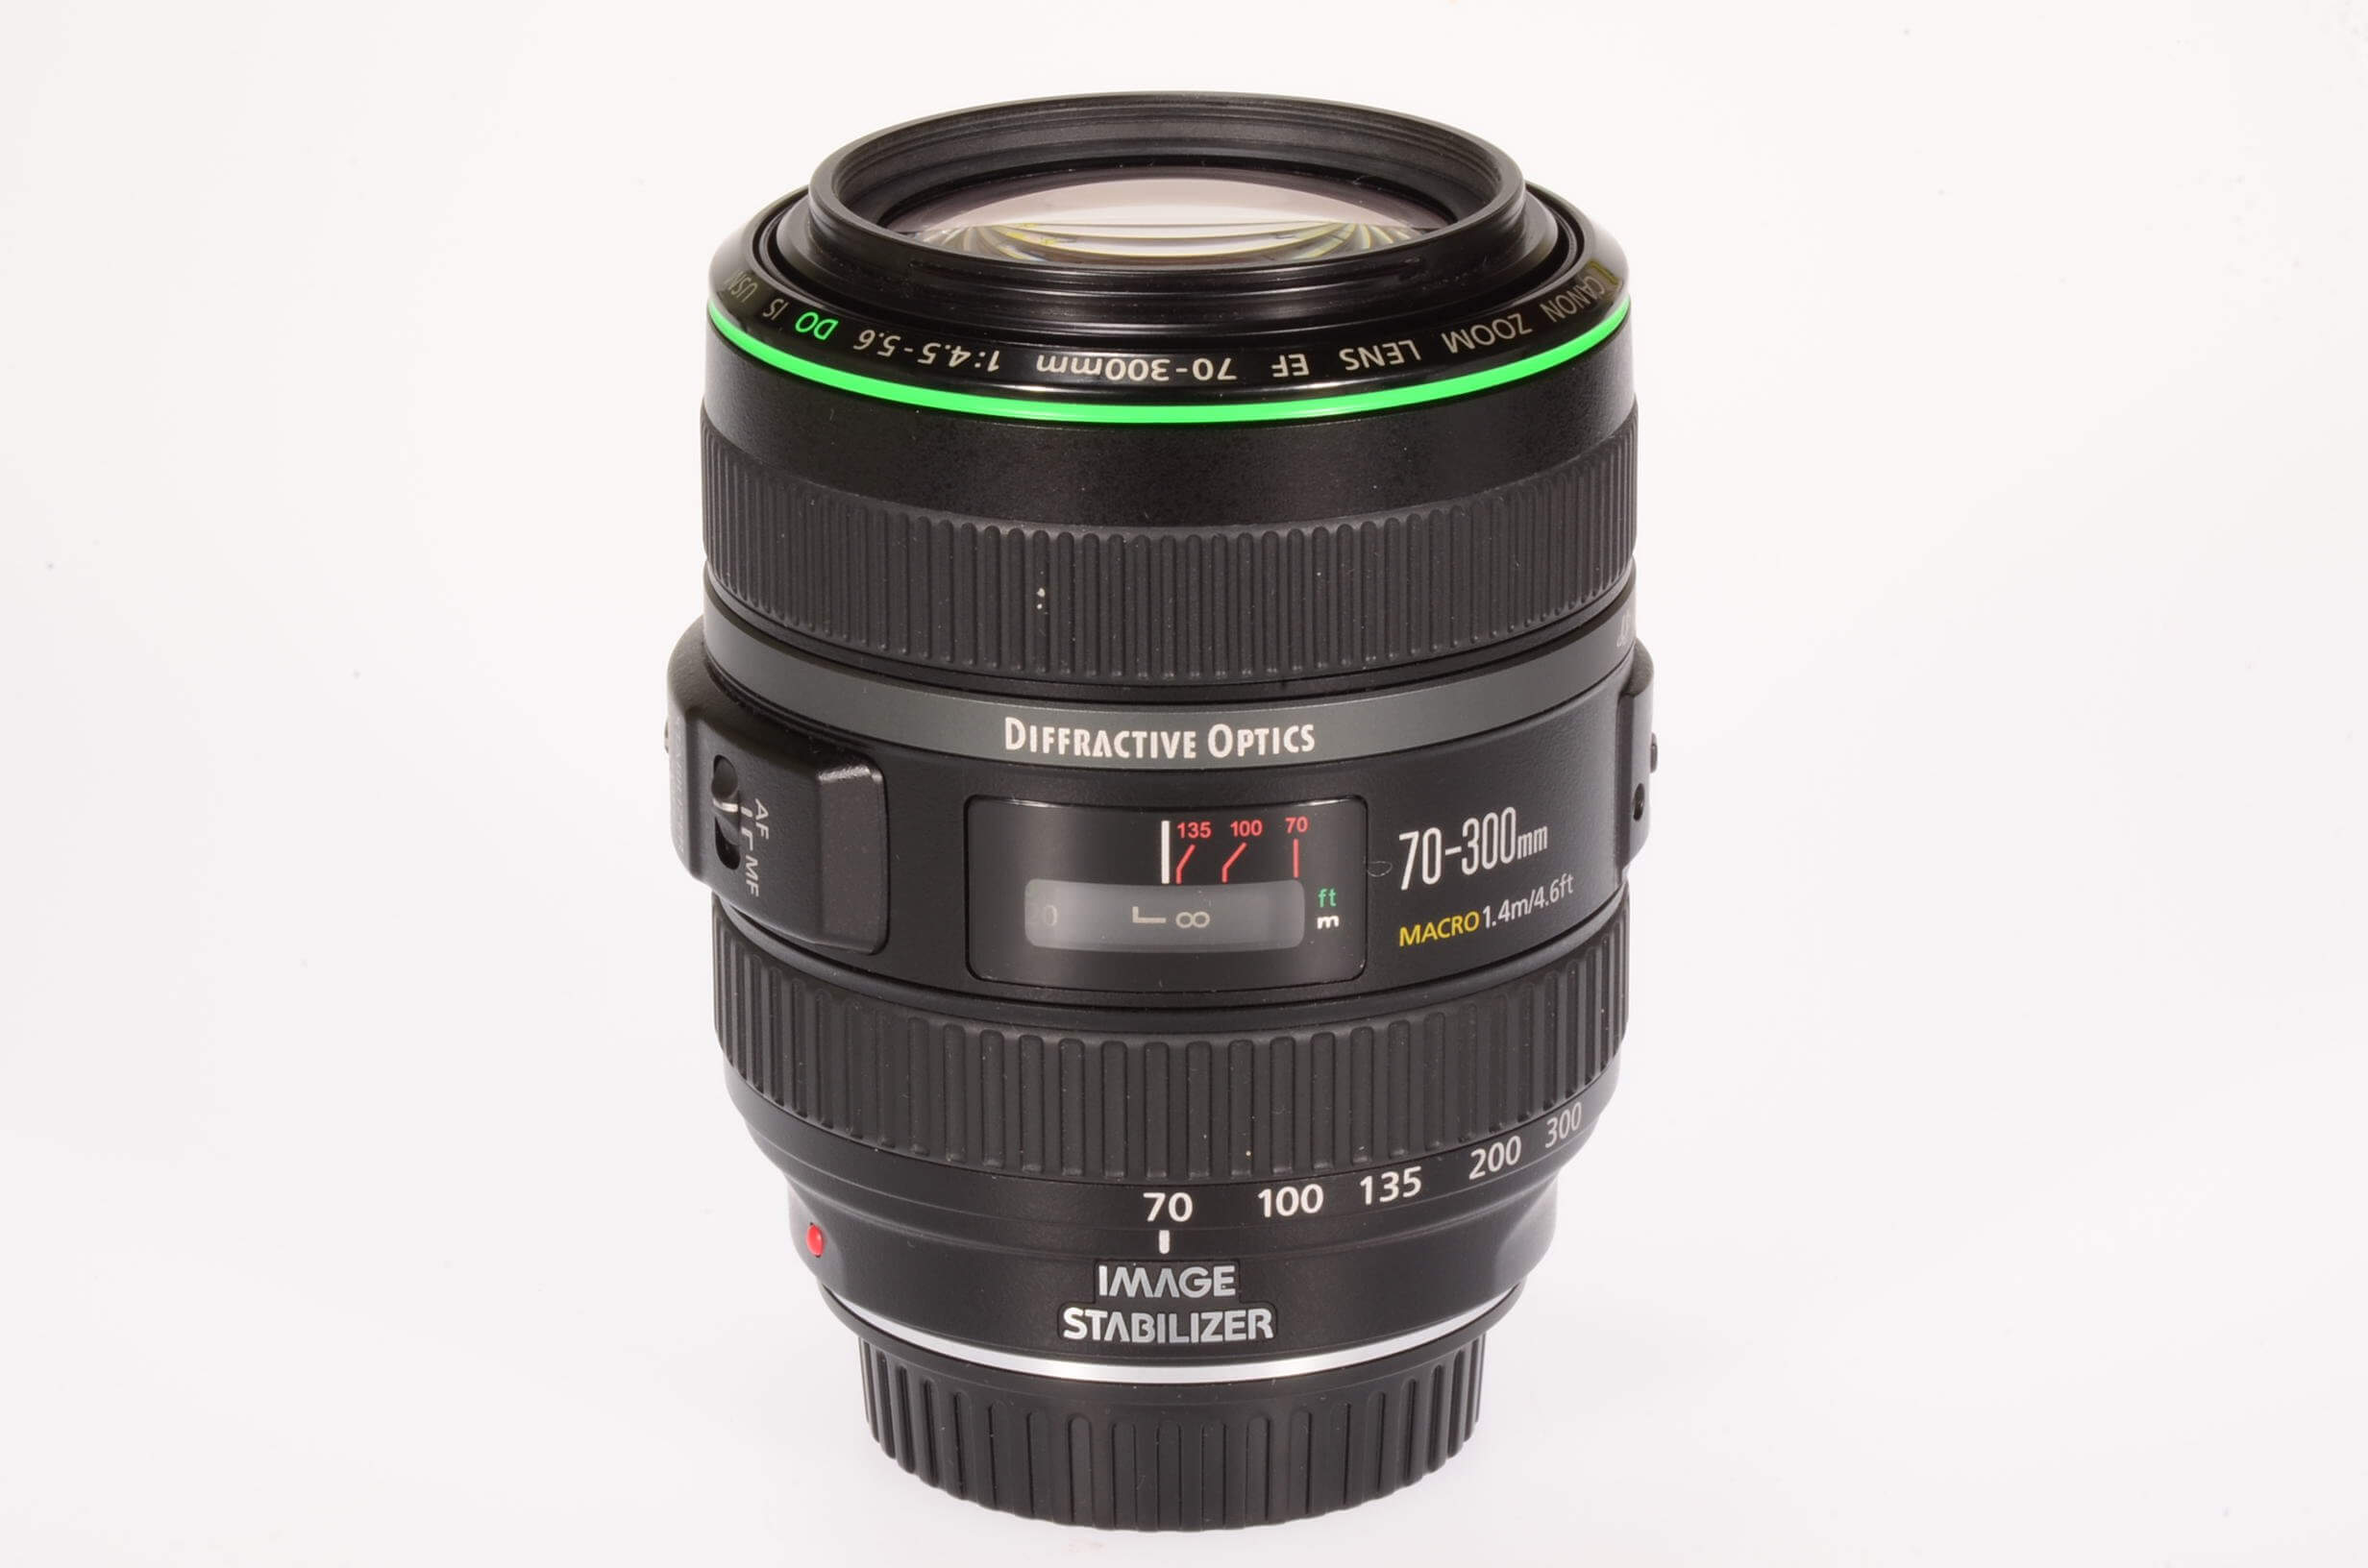 Canon 70-300mm f4.5-5.6 DO IS USM, boxed and mint!